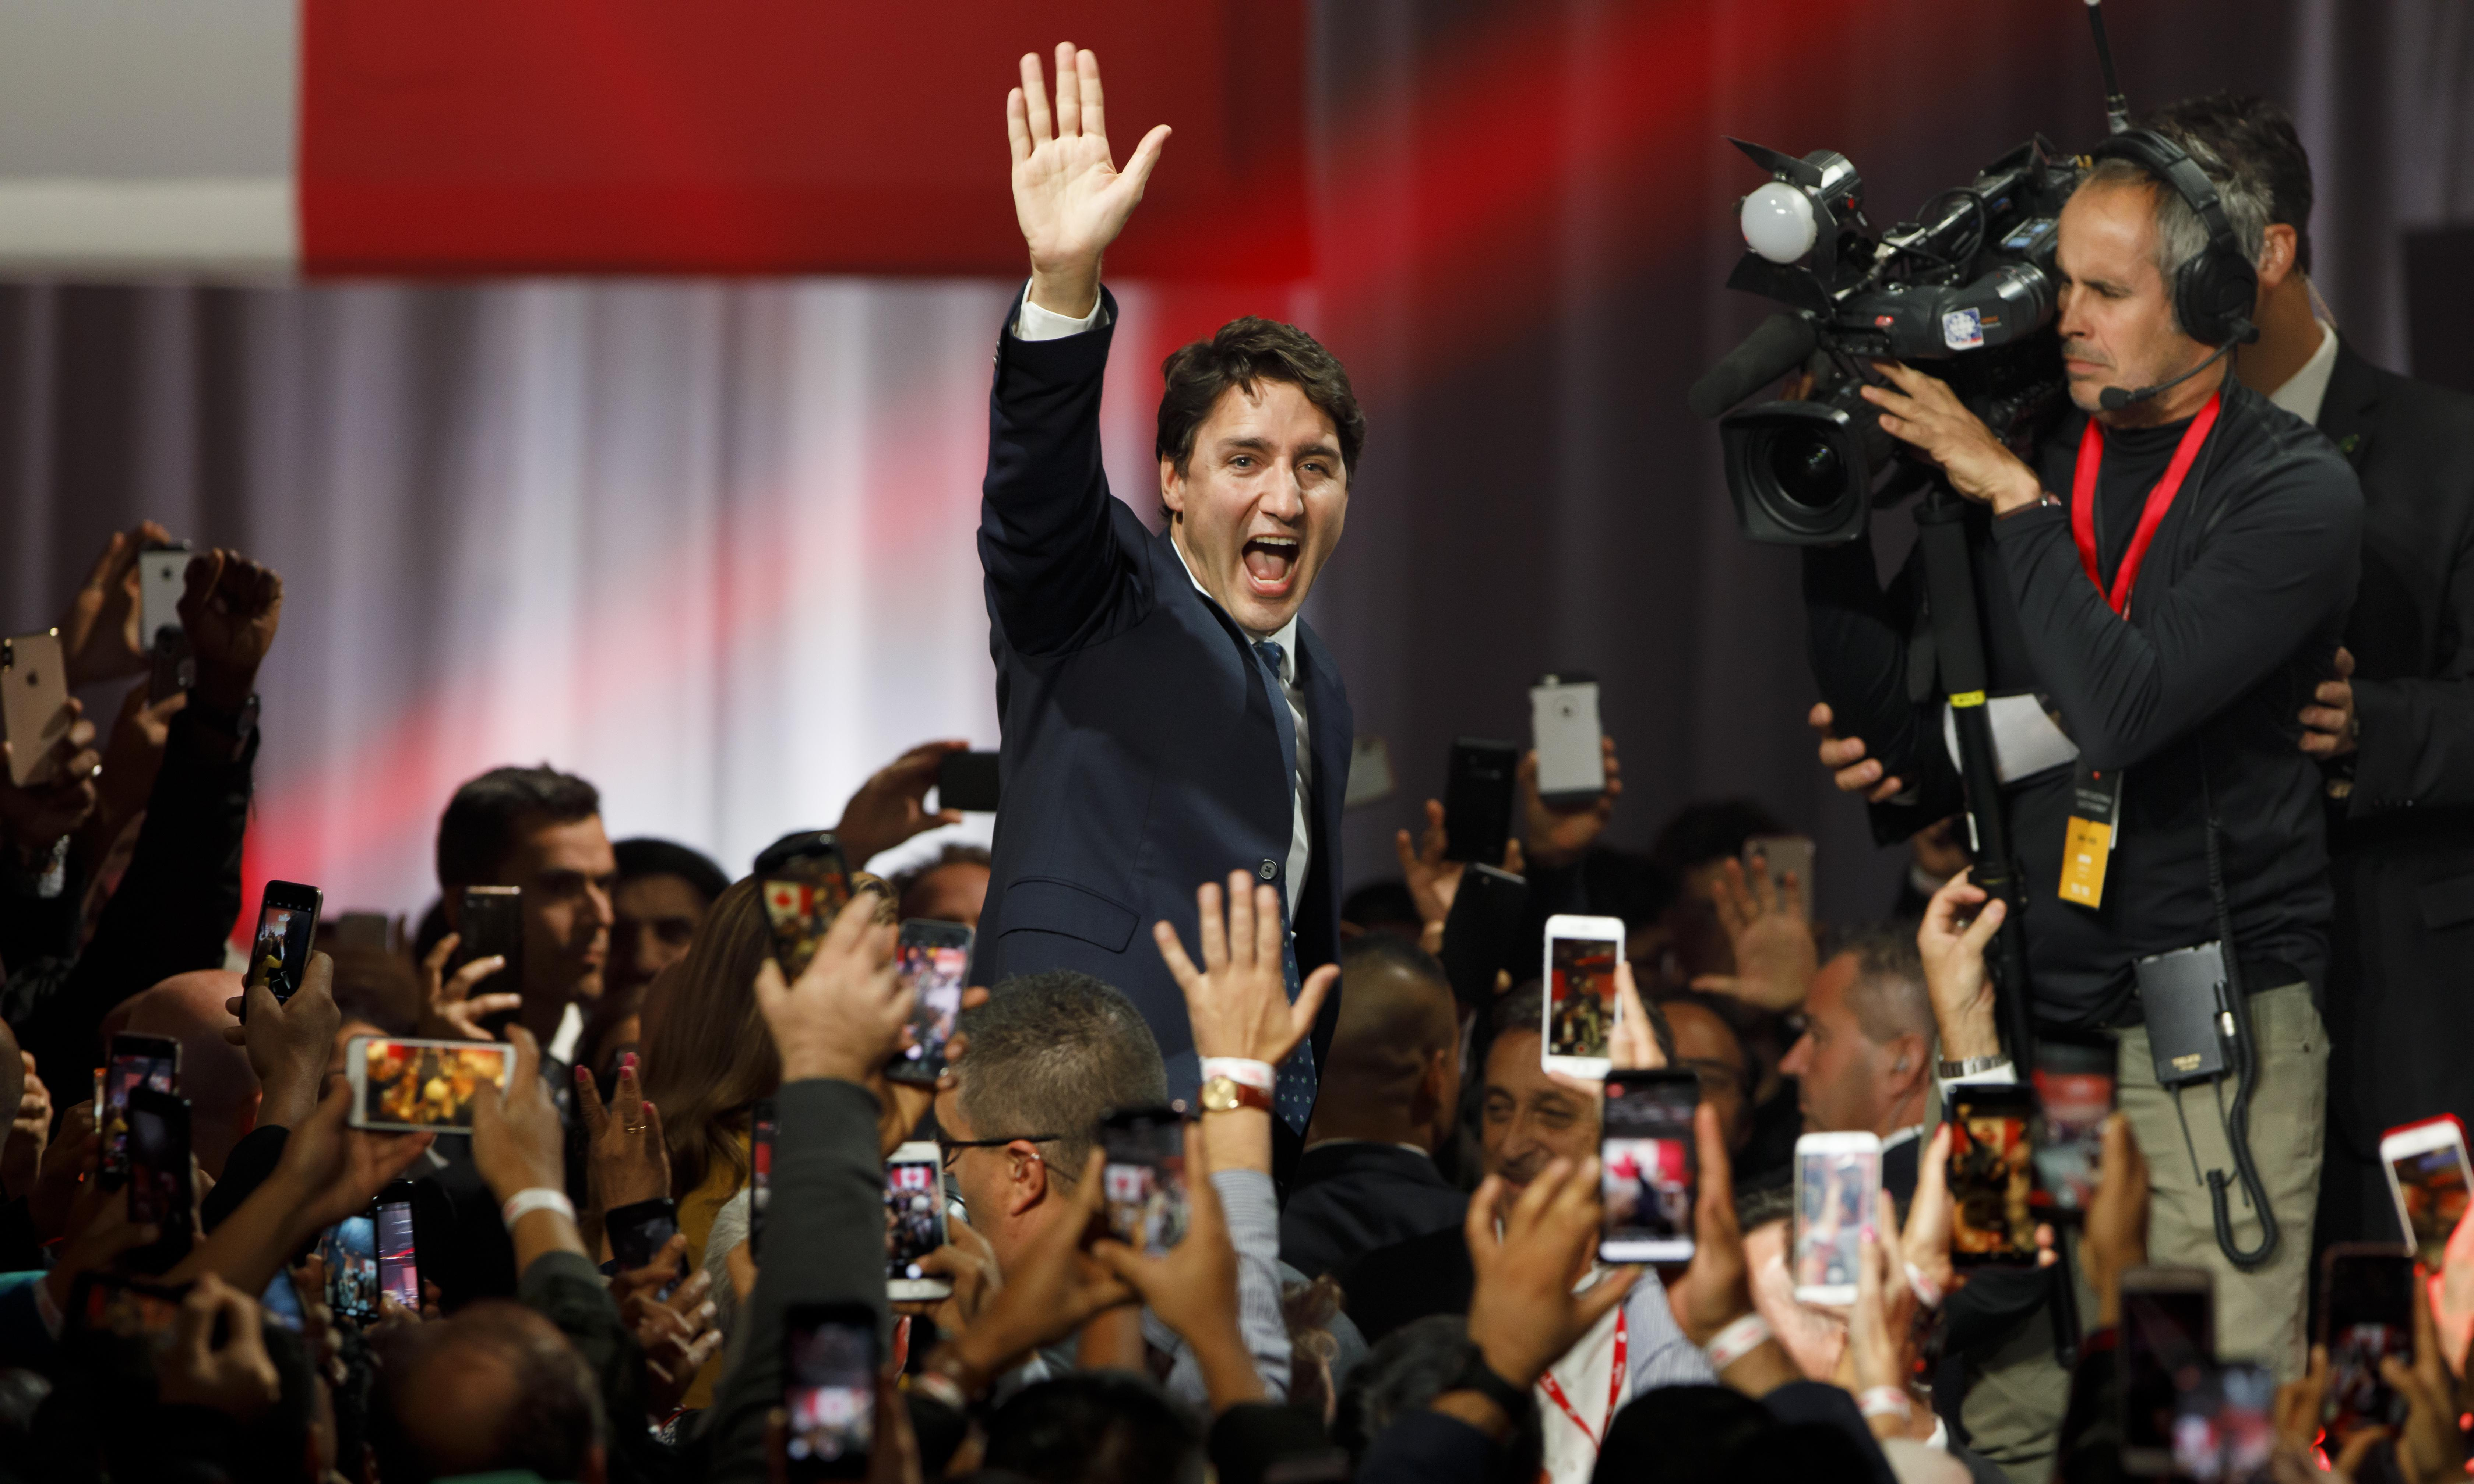 US briefing: Trudeau's narrow win, GOP disunity and ocean acidification